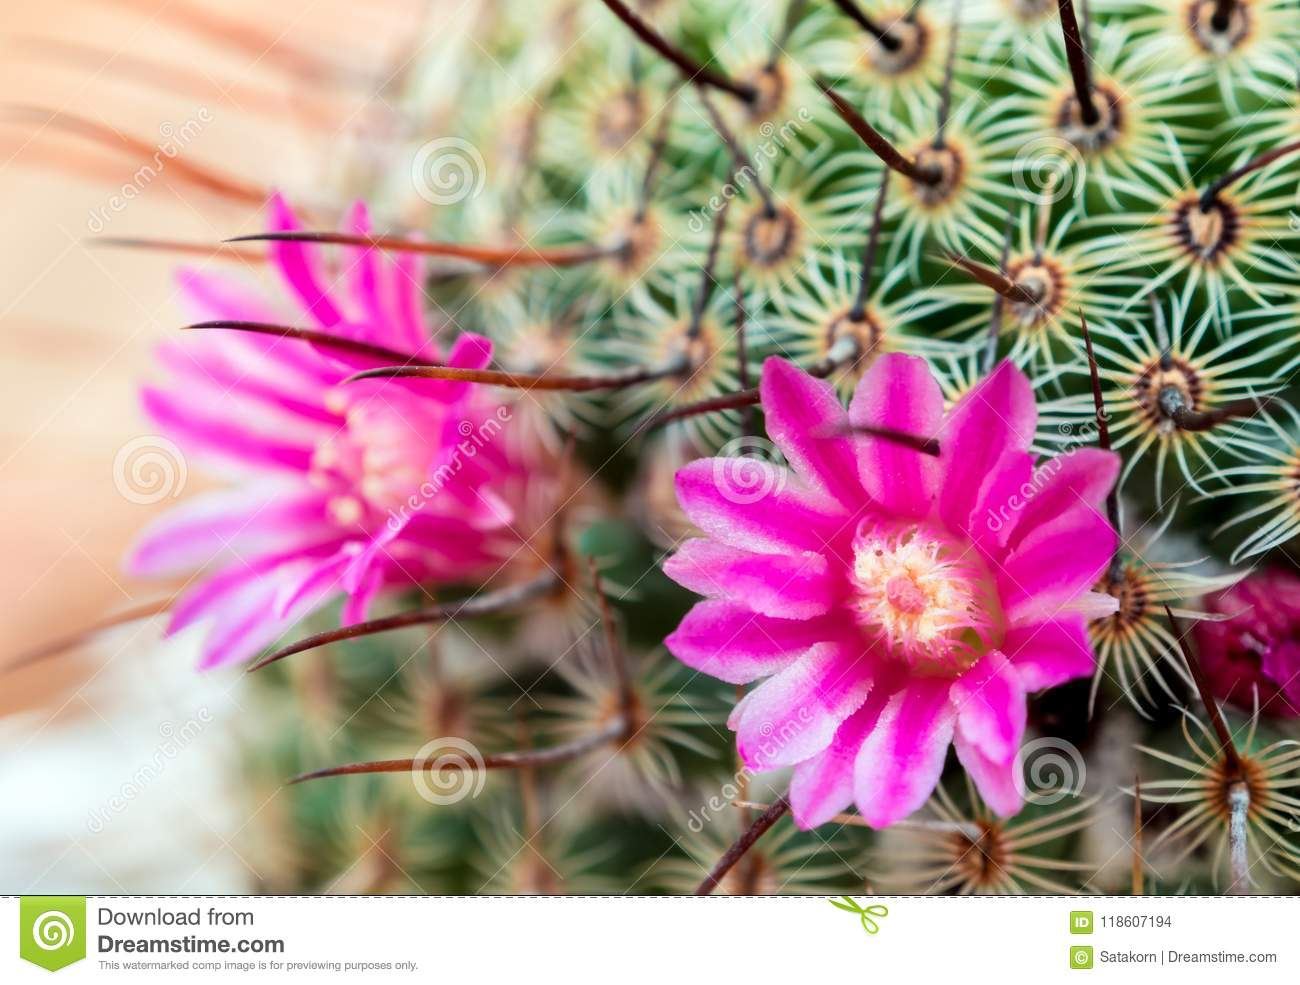 Blooming Cactus With Beautiful Pink Cactus Flowers Stock Photo